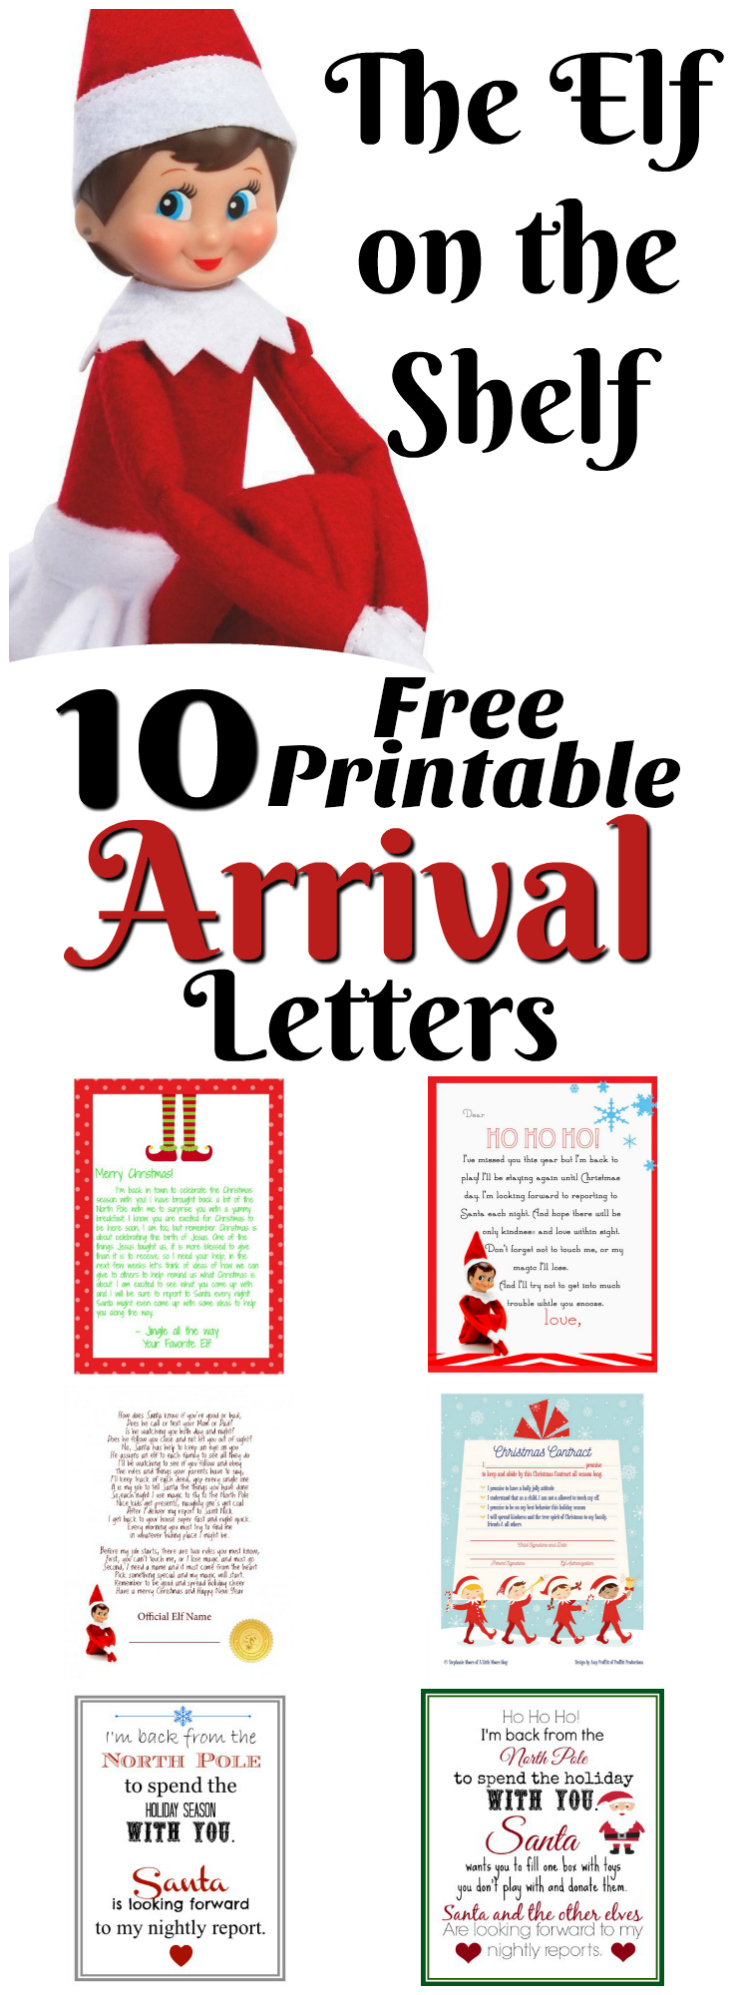 elf on the shelf letters printable on the shelf ideas for arrival 10 free printables 10180